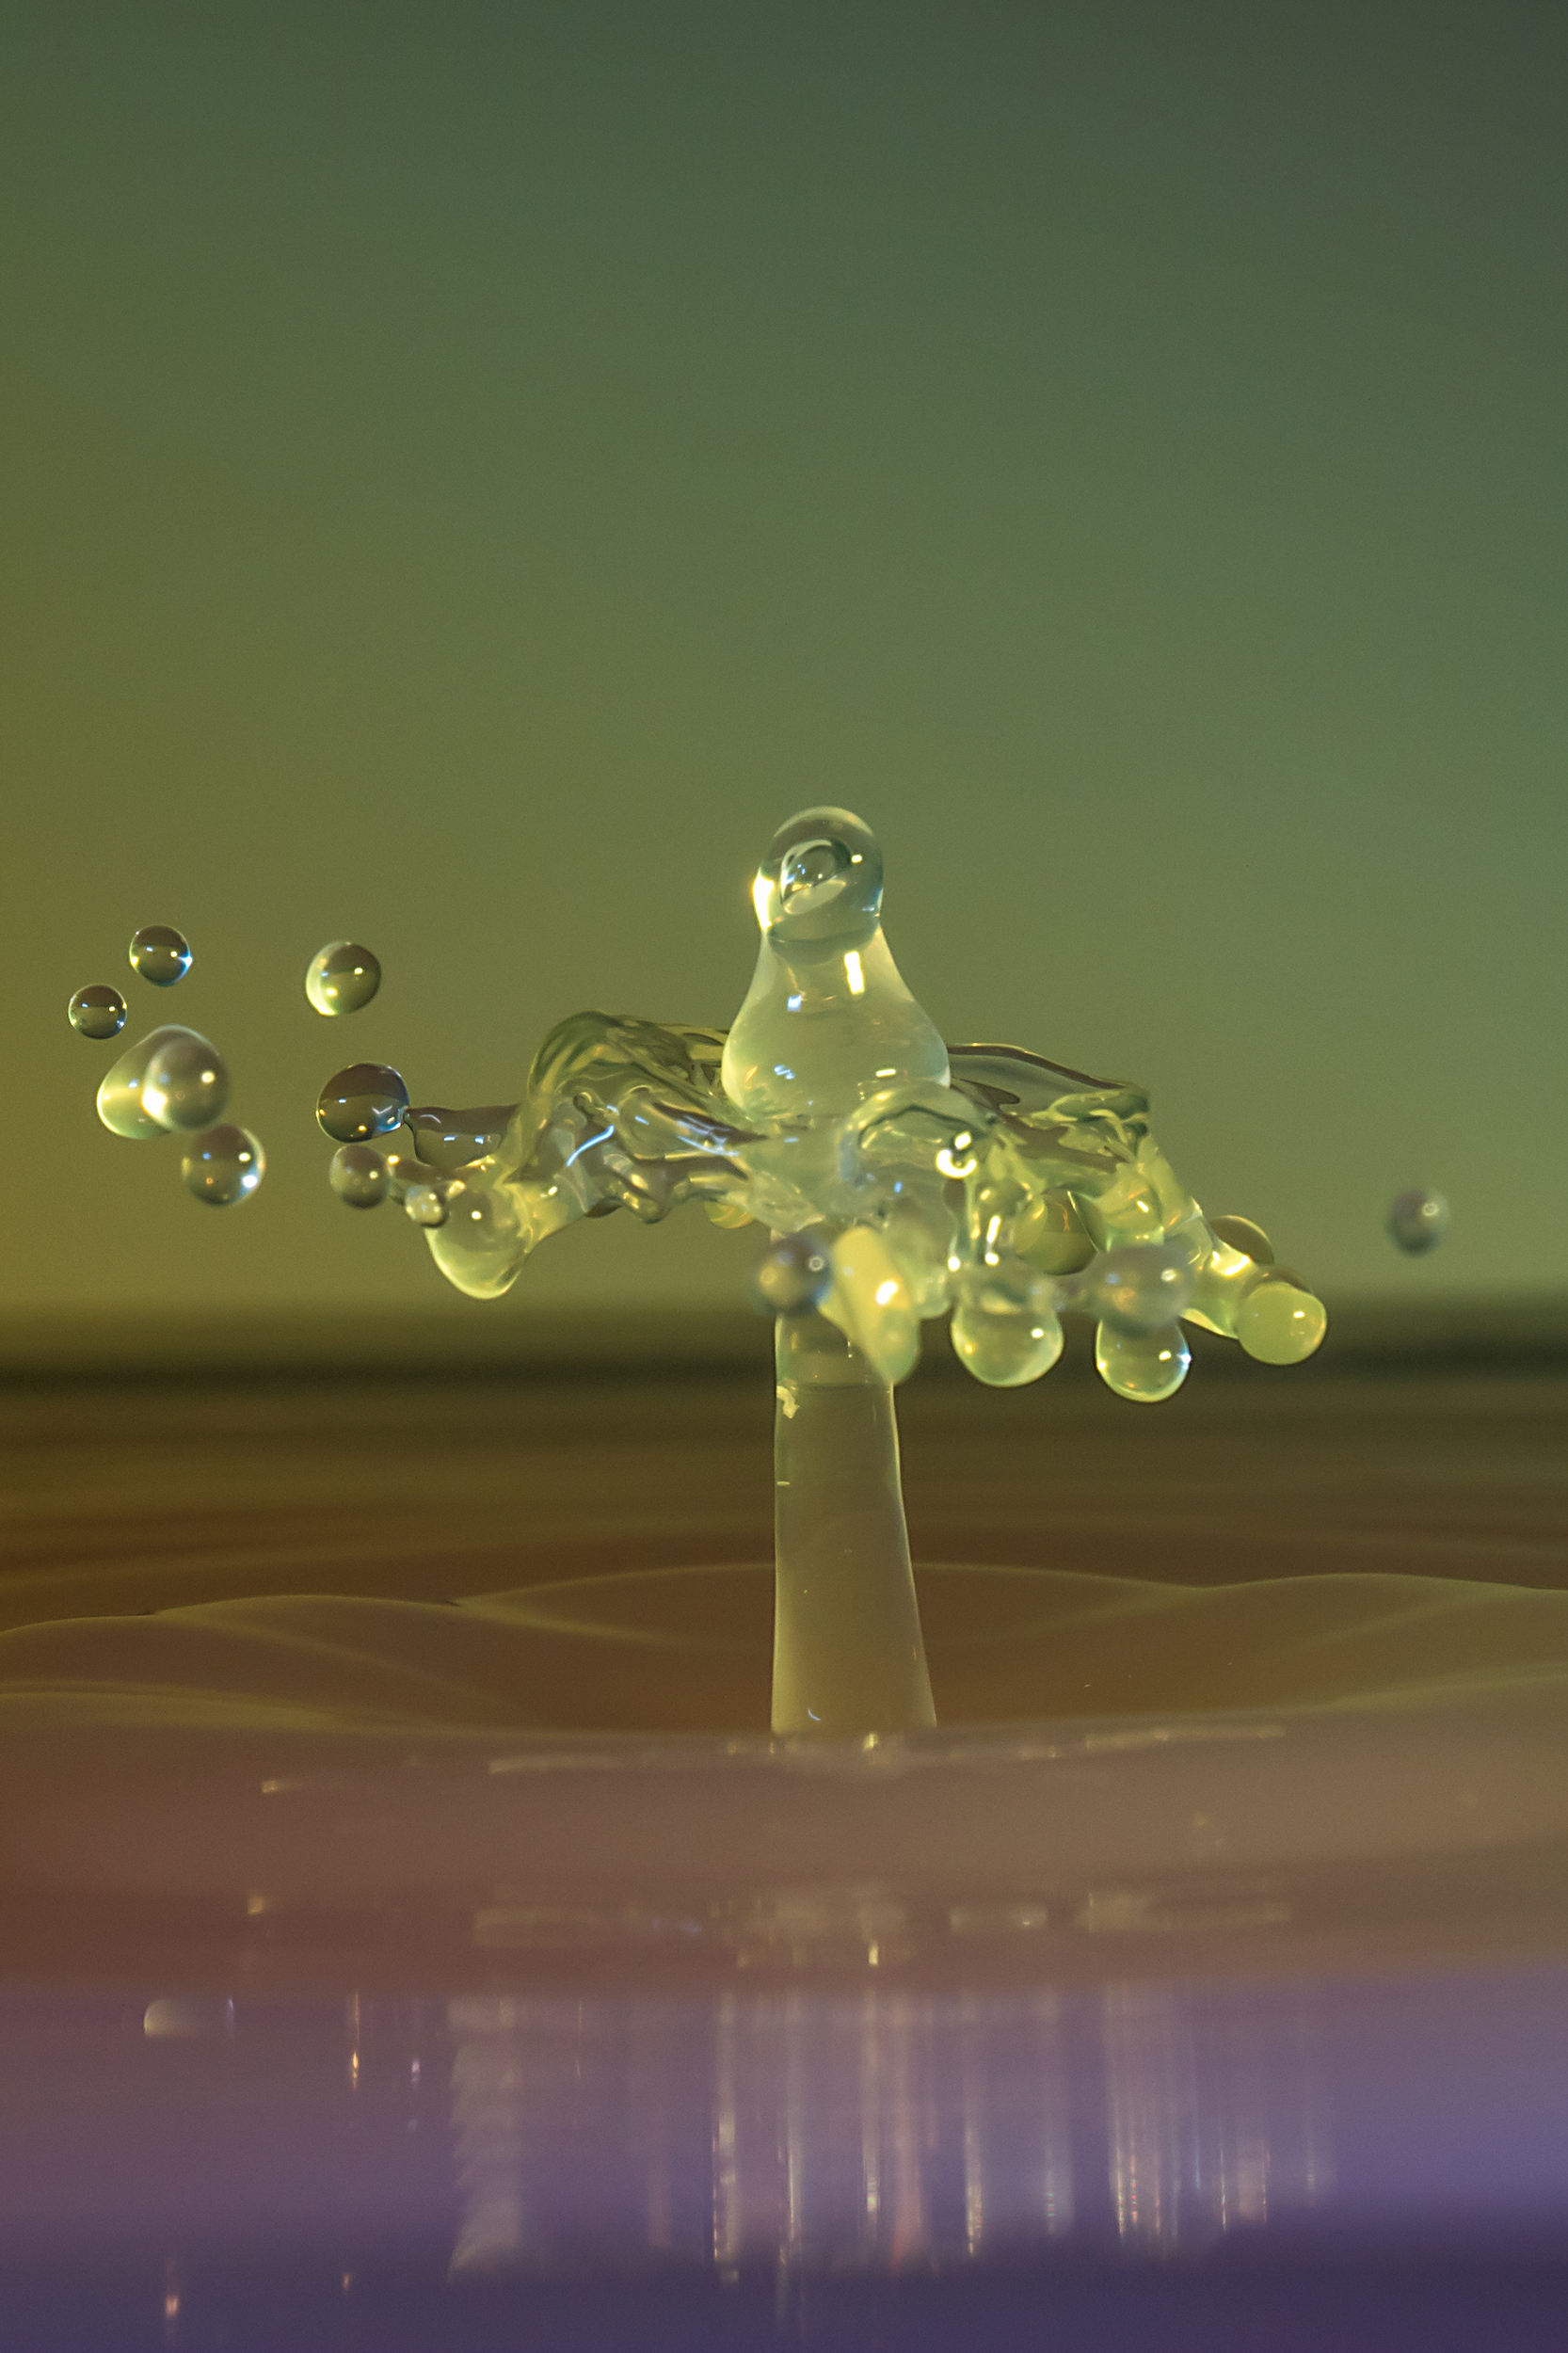 Droplet-Collision